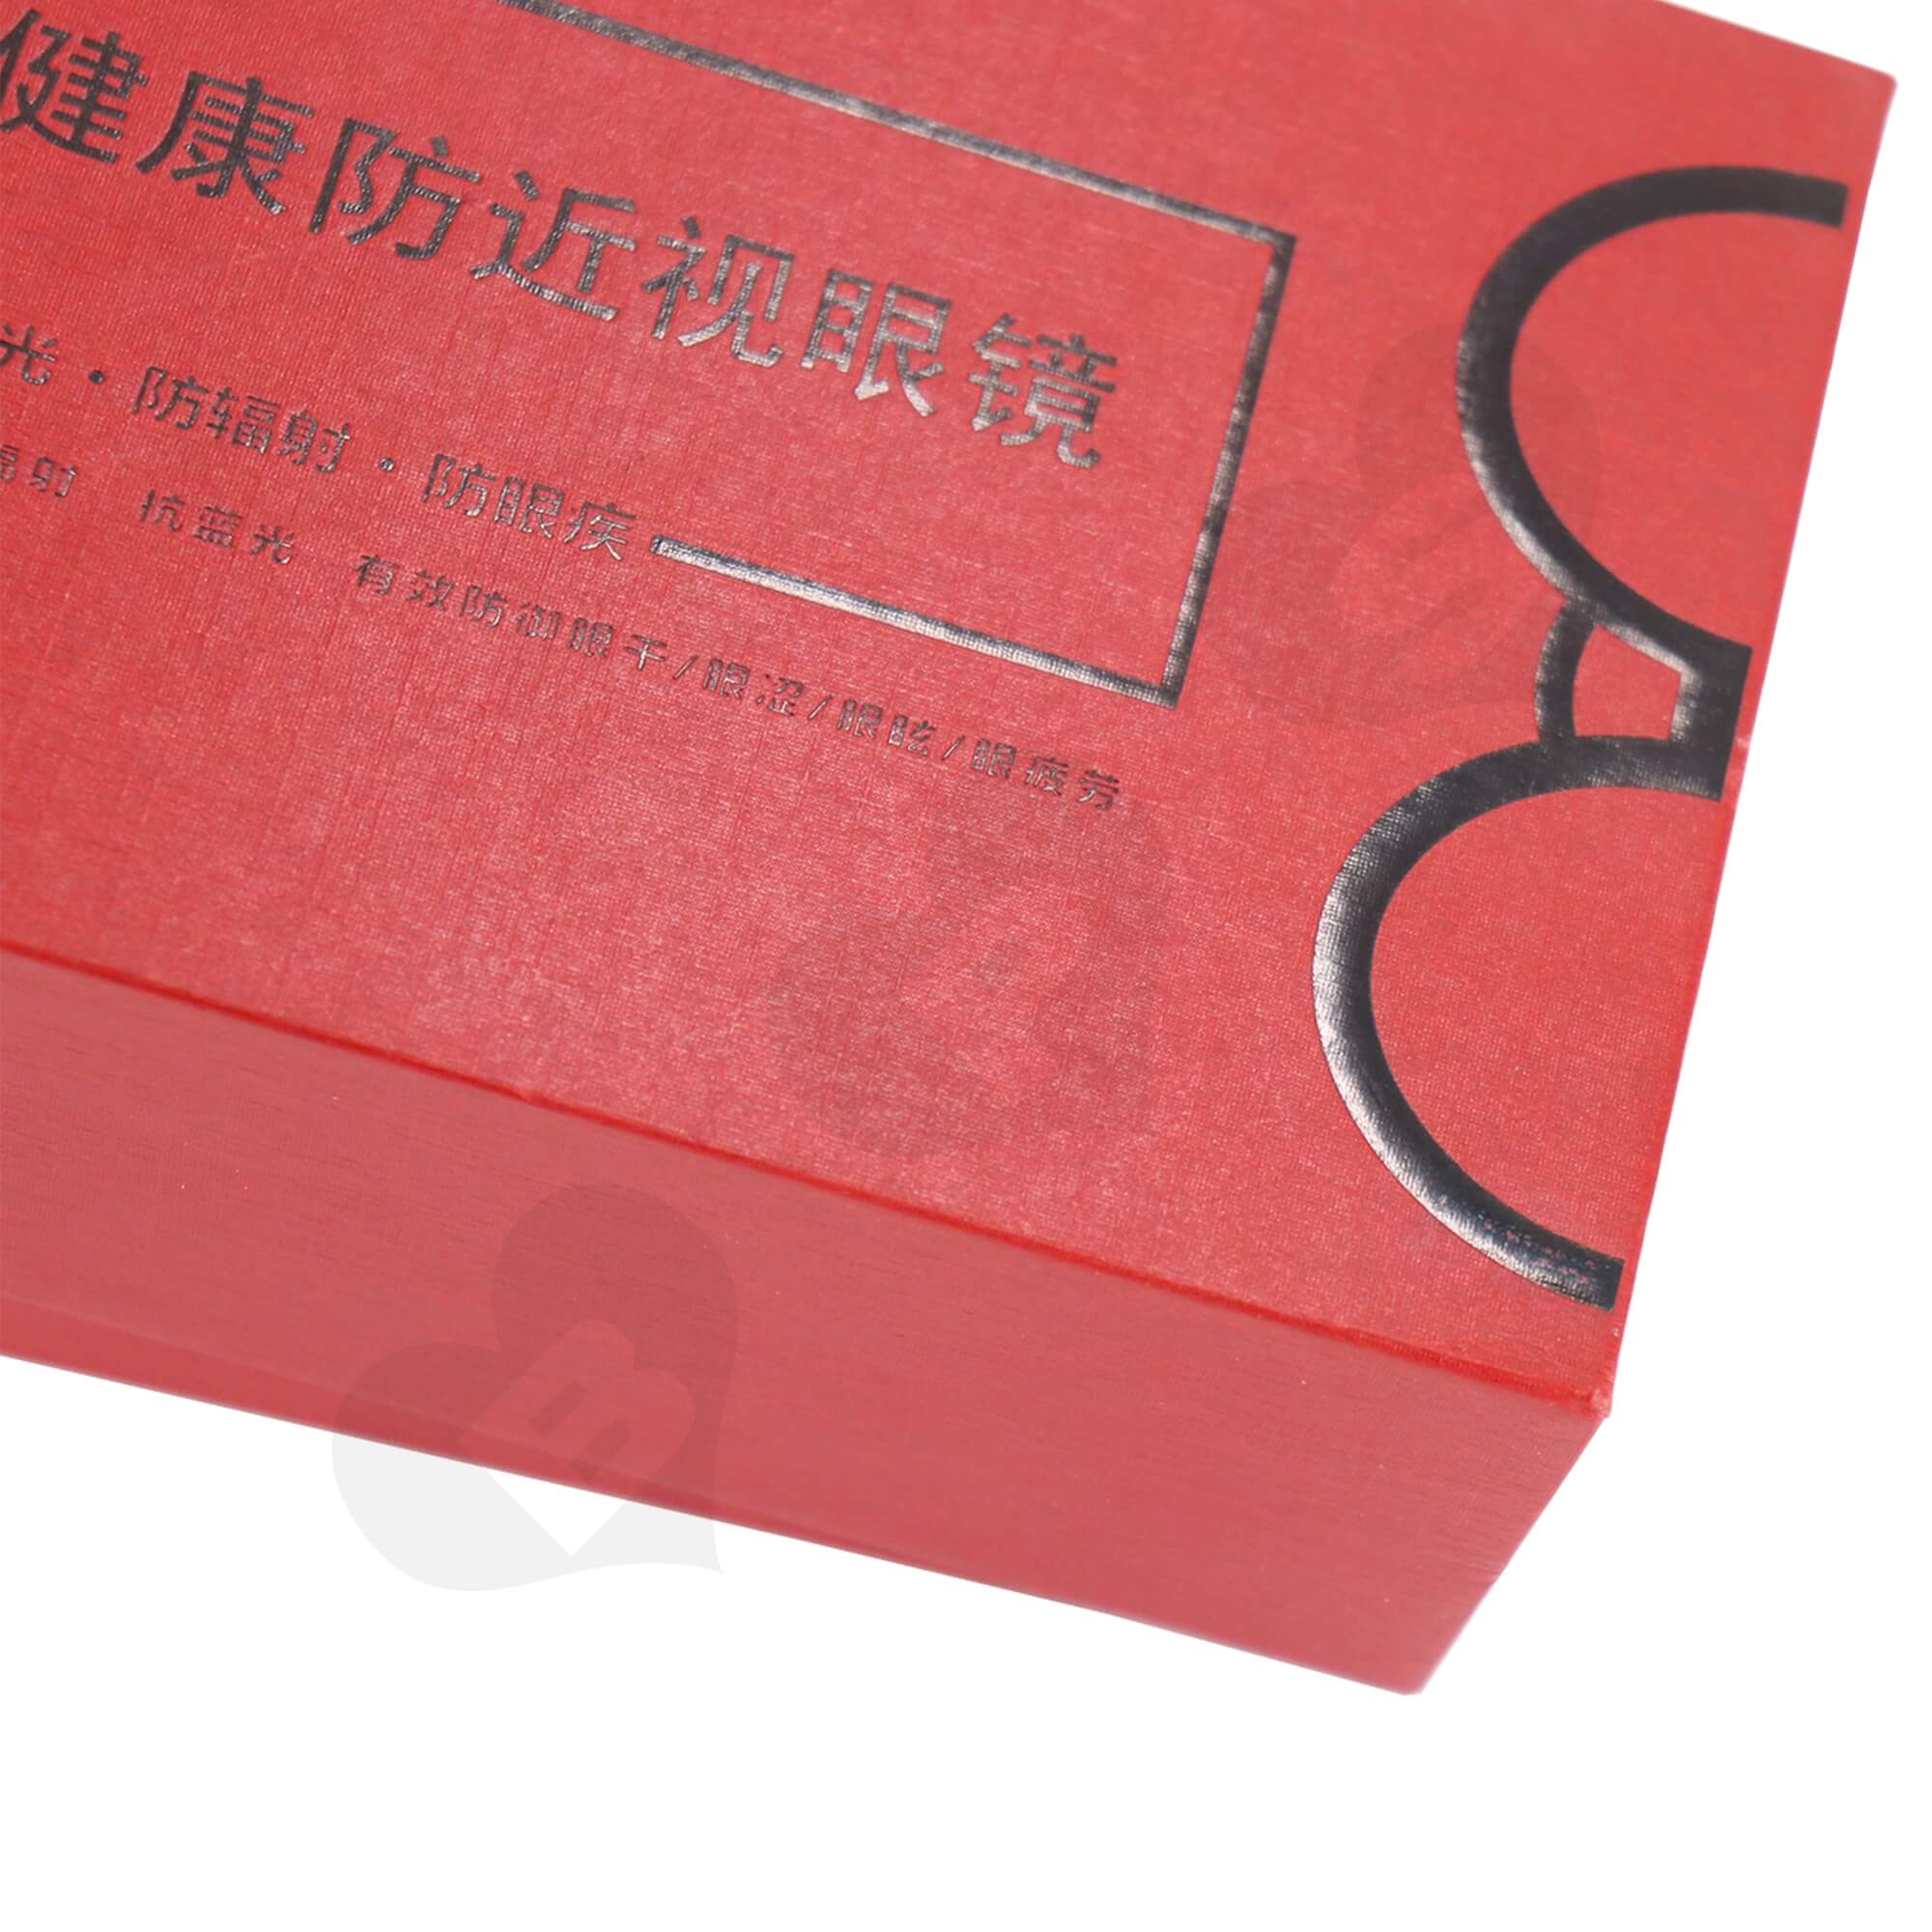 Cardboard Foil Stamping Rigid Set-Up Box For Packing Anti-Myopia Glasses Side View Two